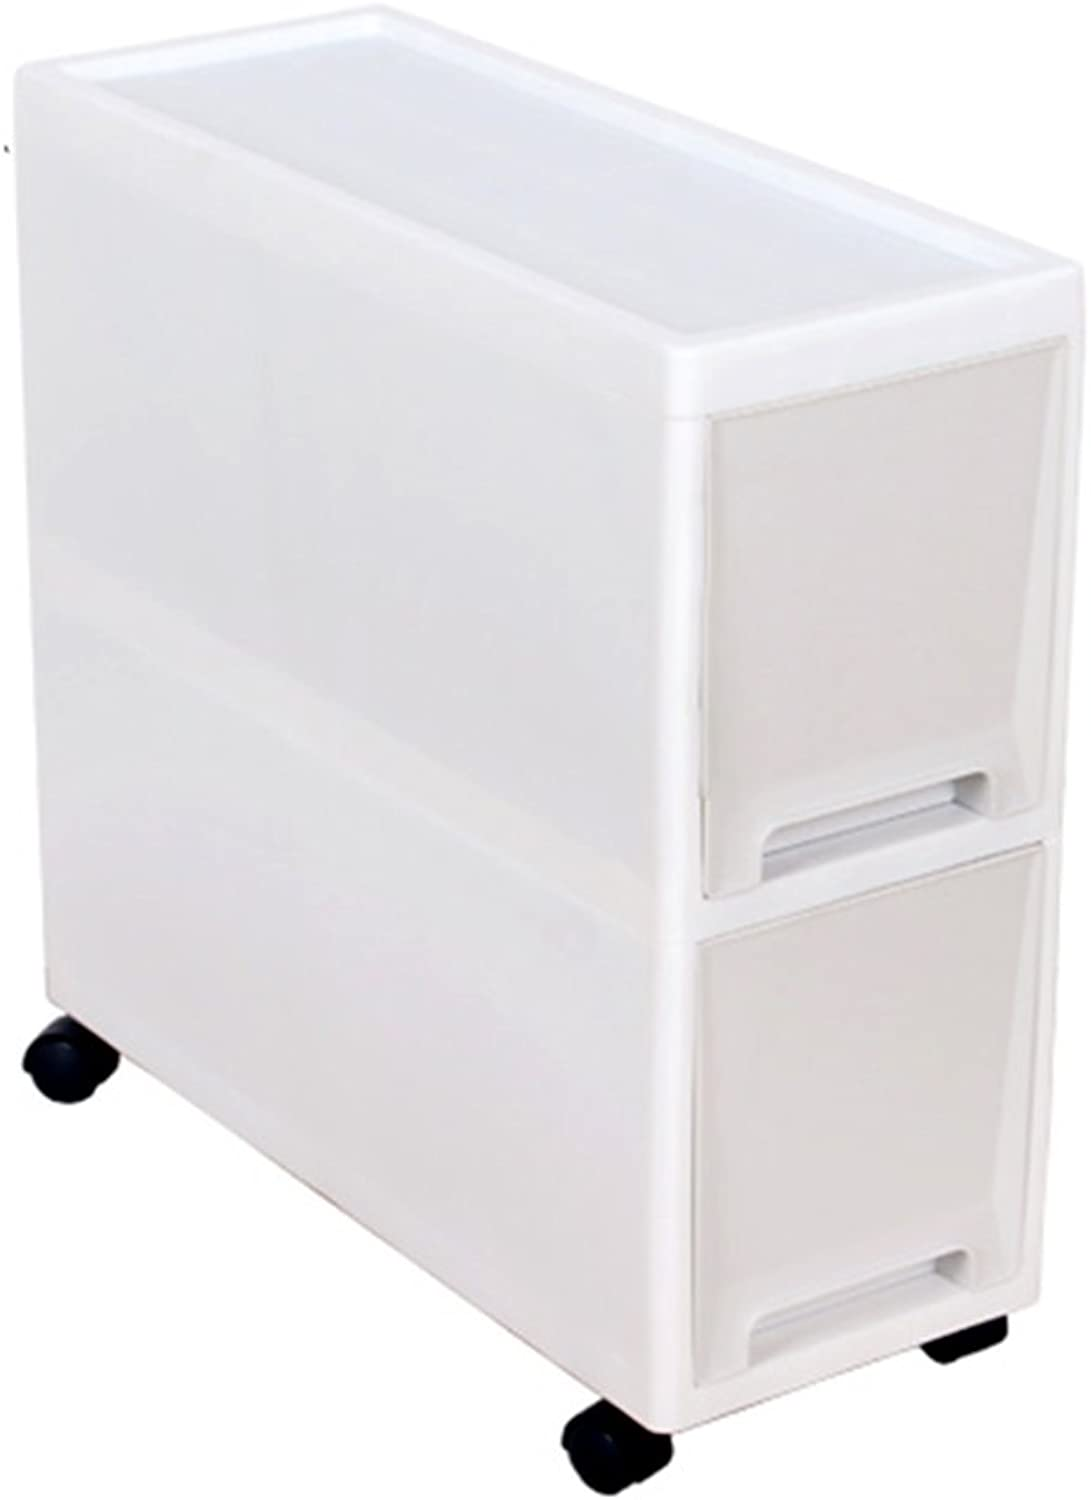 Storage cabinets Clamping Racks Bedroom Cabinets Plastic Toilets Removable Storage Box Home Kitchen Slots Storage cabinets (color   White, Size   45  44.5cm)